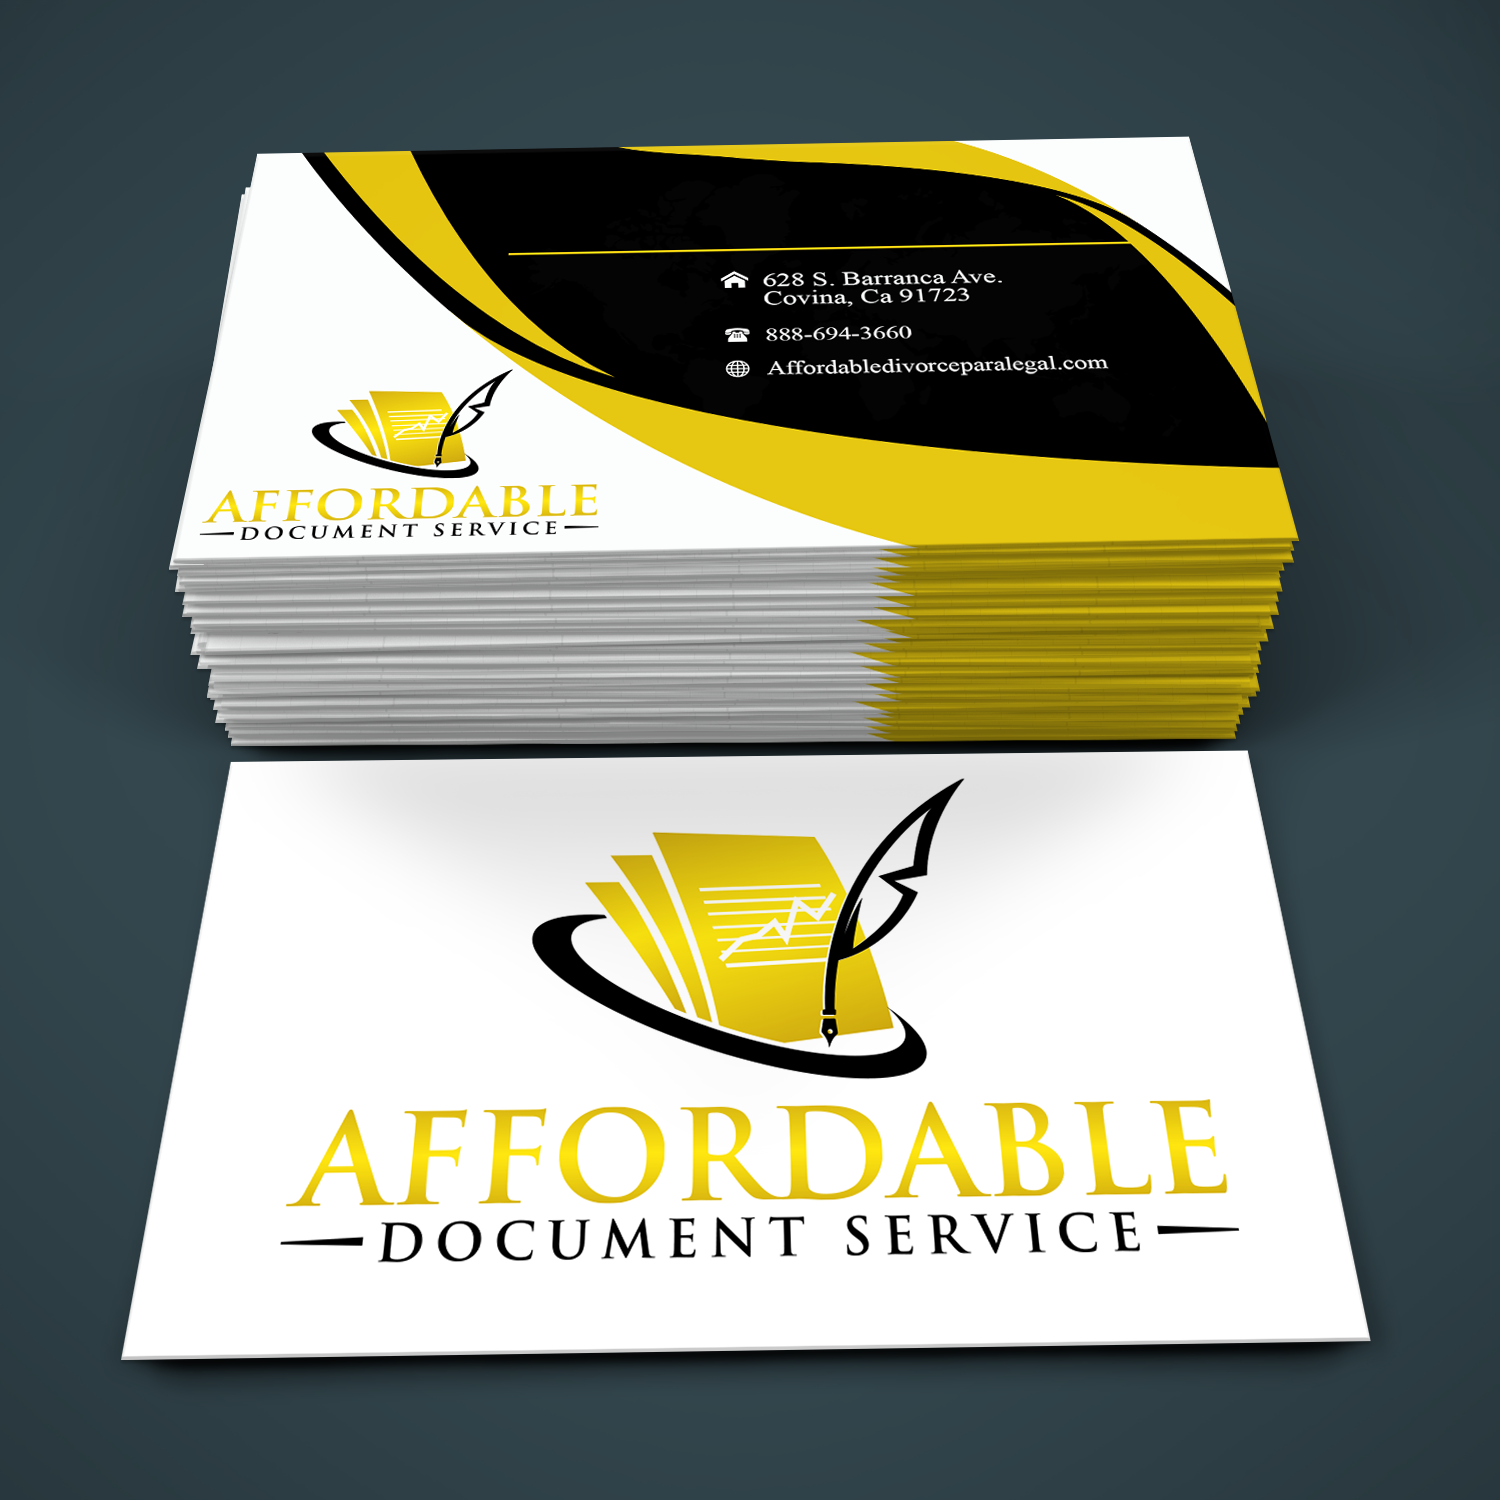 An Affordable Document Service